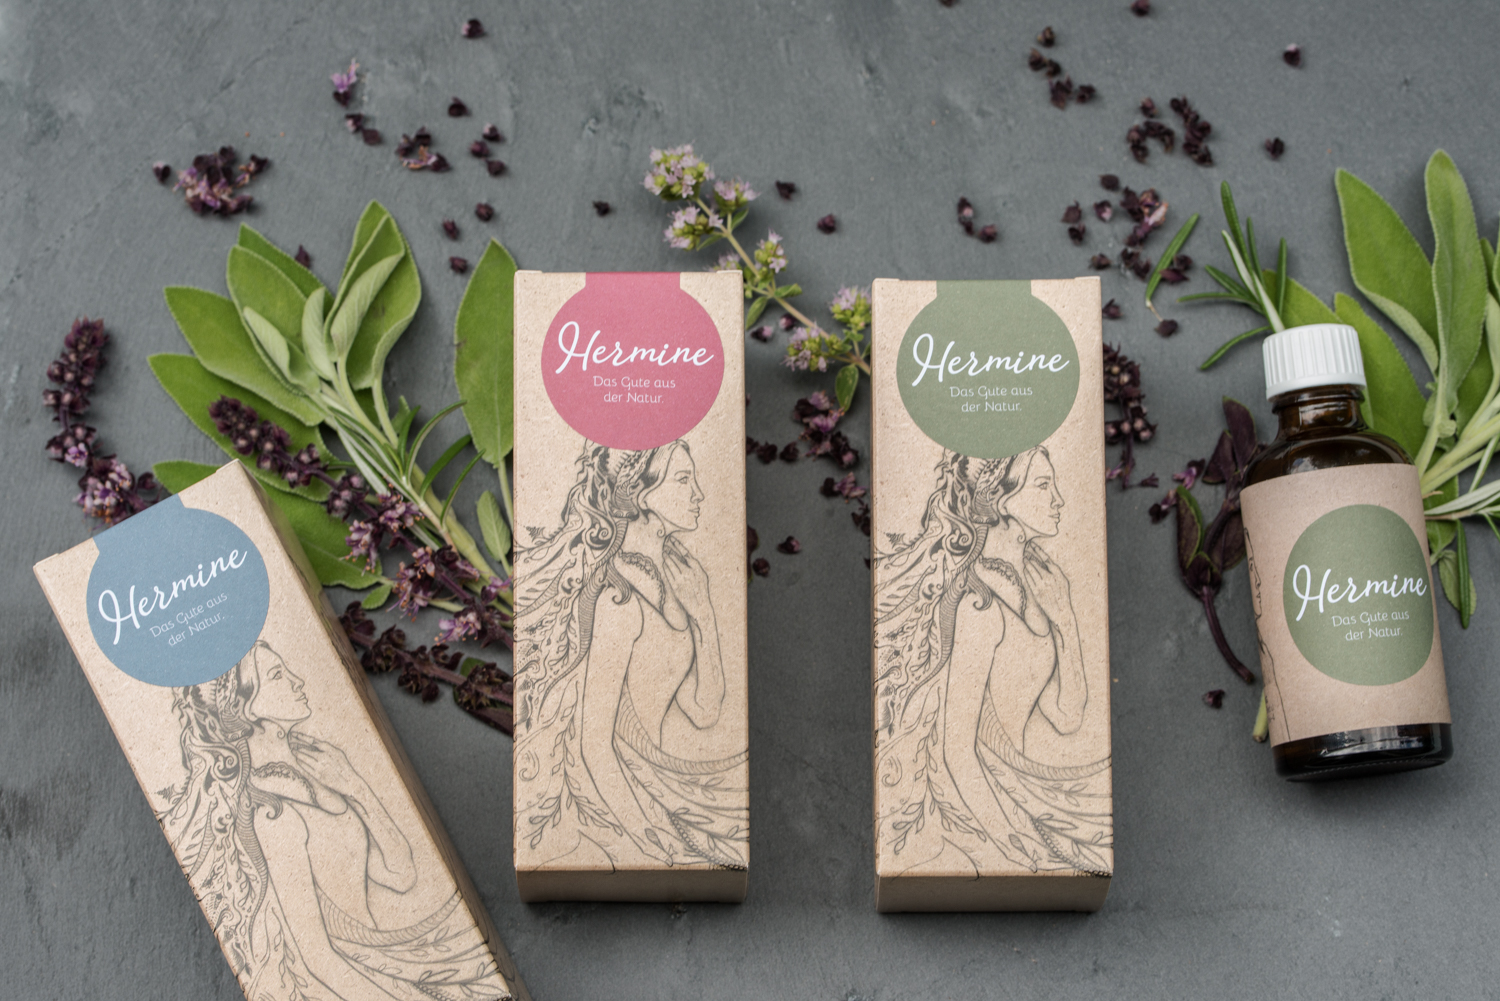 Hermine_packaging_mabai_3